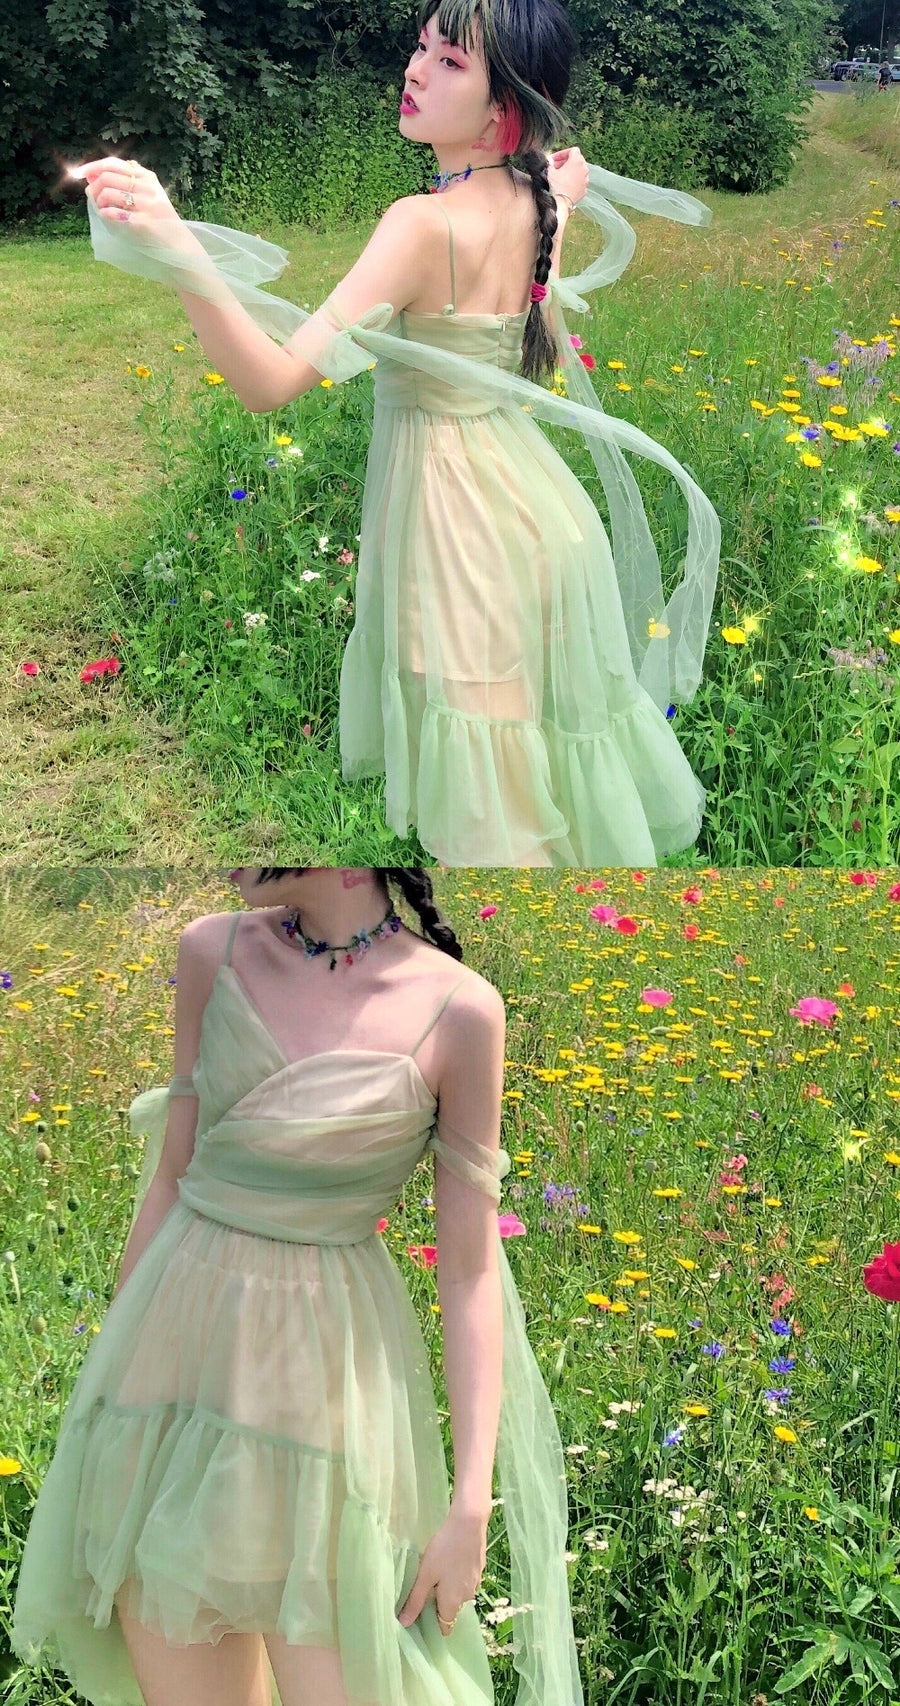 [Premium Selected] Spring Fireflies Tinker Bell Dream Dress (Designer Arilf) - Peiliee Shop